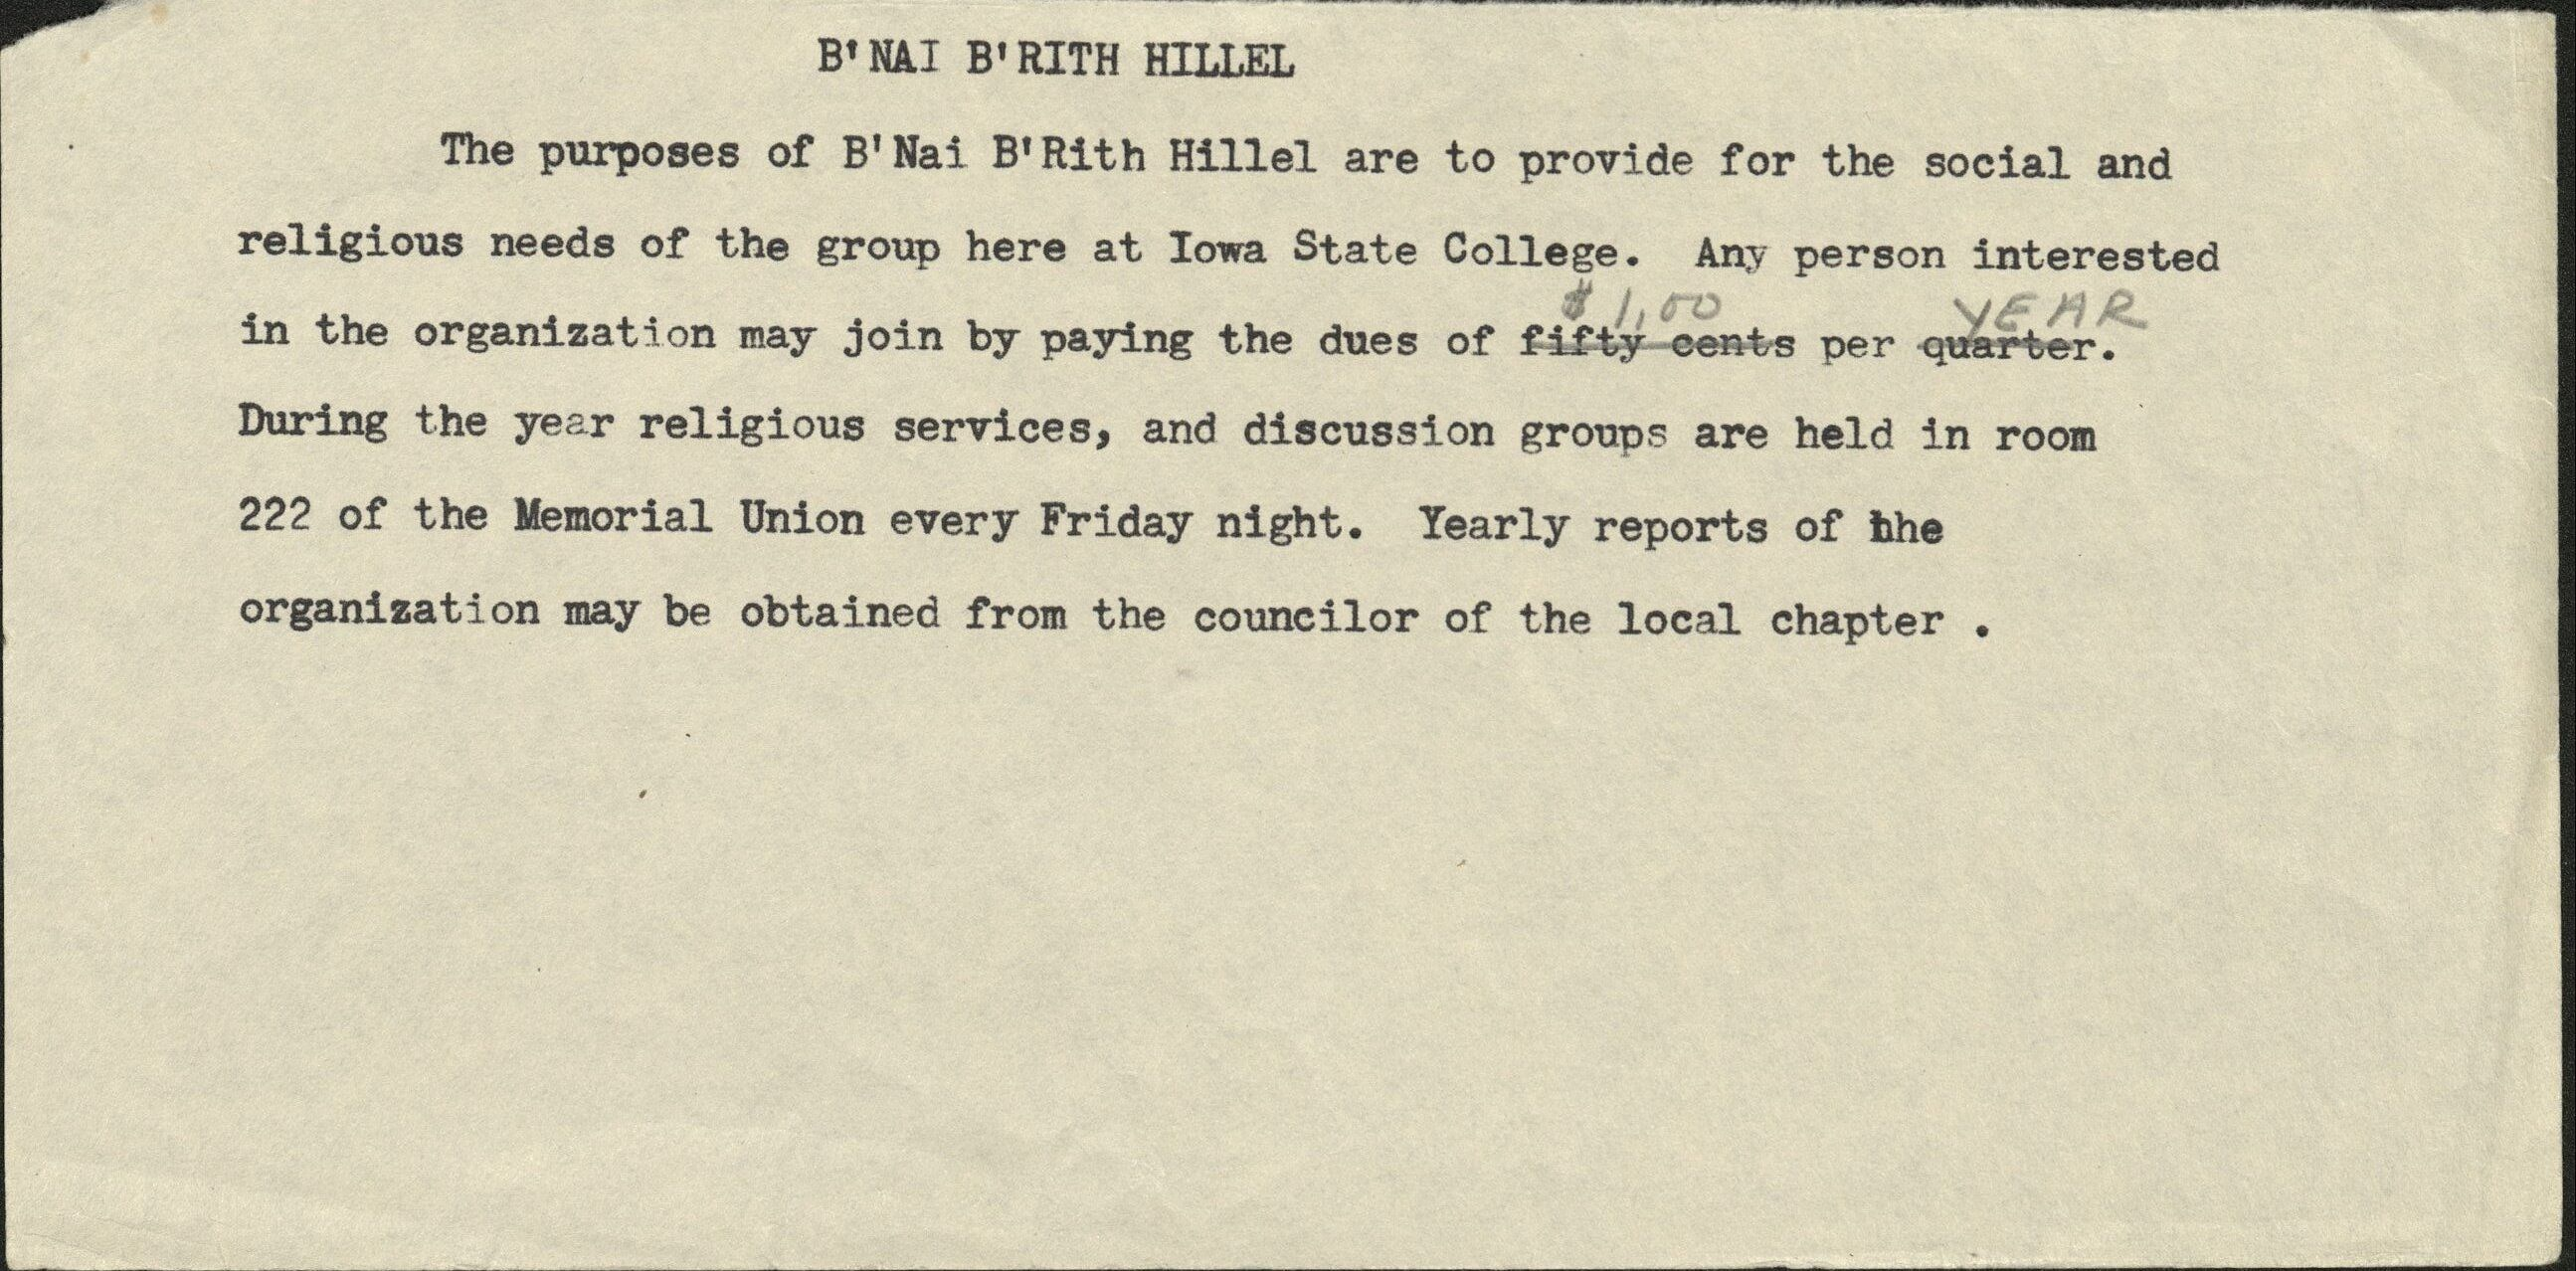 "Draft of a purpose statement on a fragment of paper. Text reads: ""B'Nai B'rith Hillel. The purposes of B'Nai B'Rith Hillel are to provide for the social and religious needs of the group here at Iowa State College. Any person interested in the organization may join by paying the dues of $1.00 per year. During the year religious services, and discussion groups are held in room 222 of the Memorial Union every Friday night. Yearly reports of the organization may be obtained from the councilor of the local chapter."""